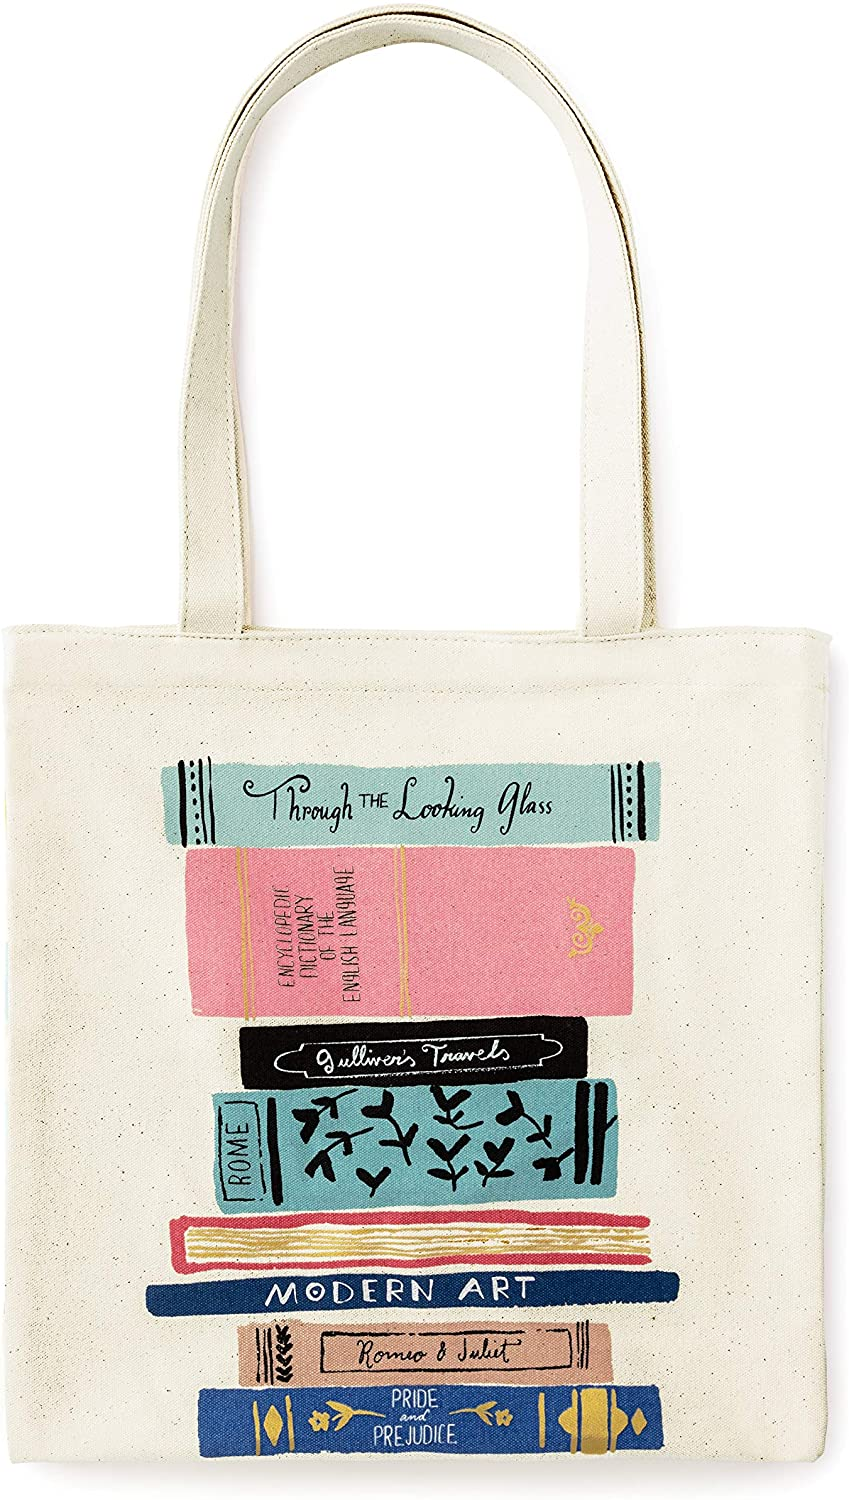 Kate Spade New York Canvas Tote Bag with Interior Pocket